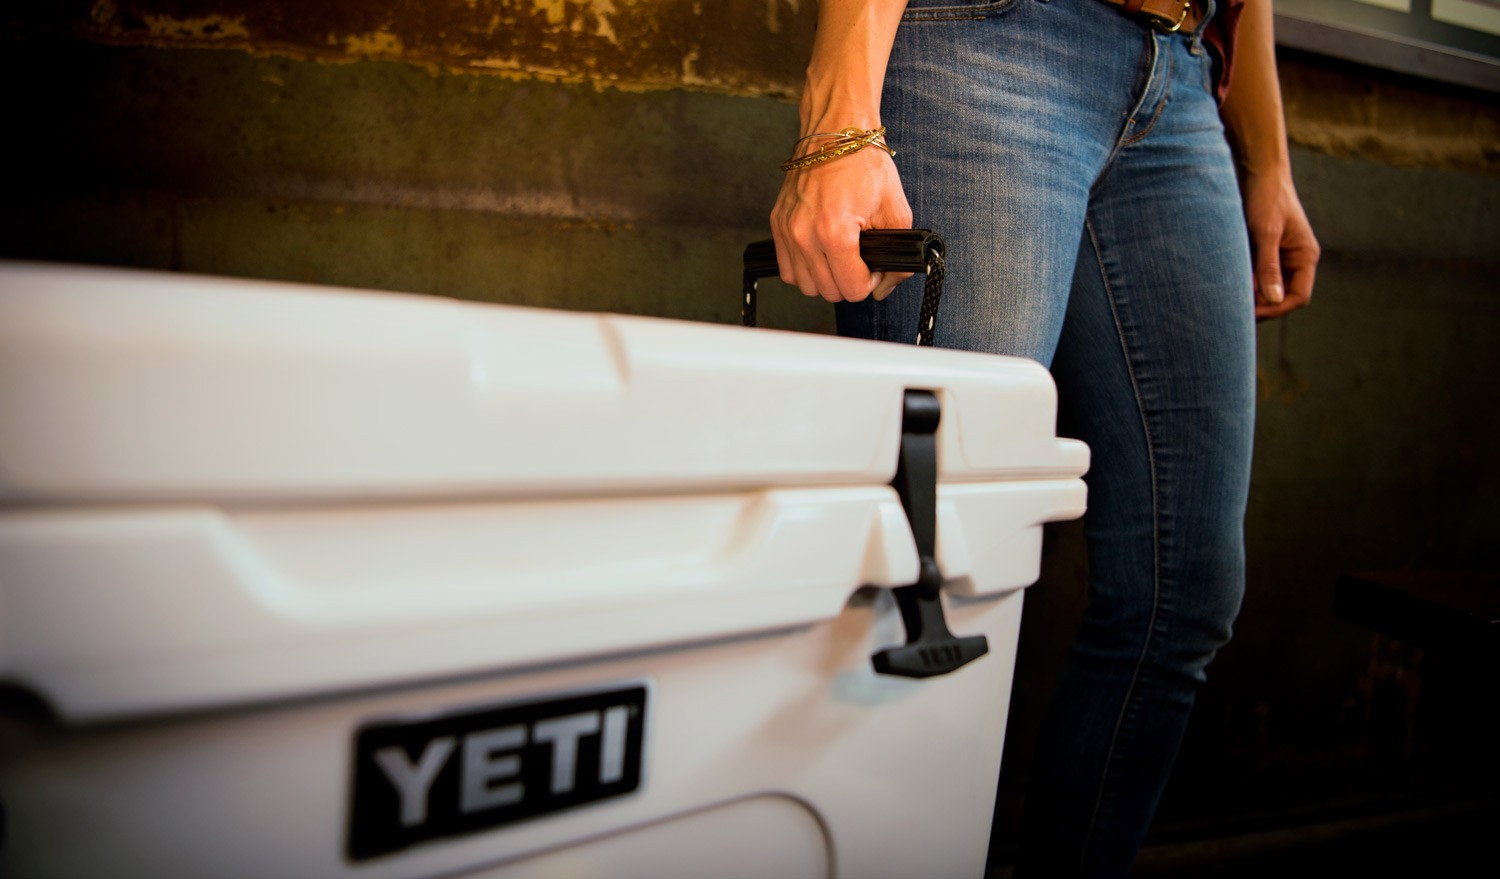 Best Yeti Cooler Reviews